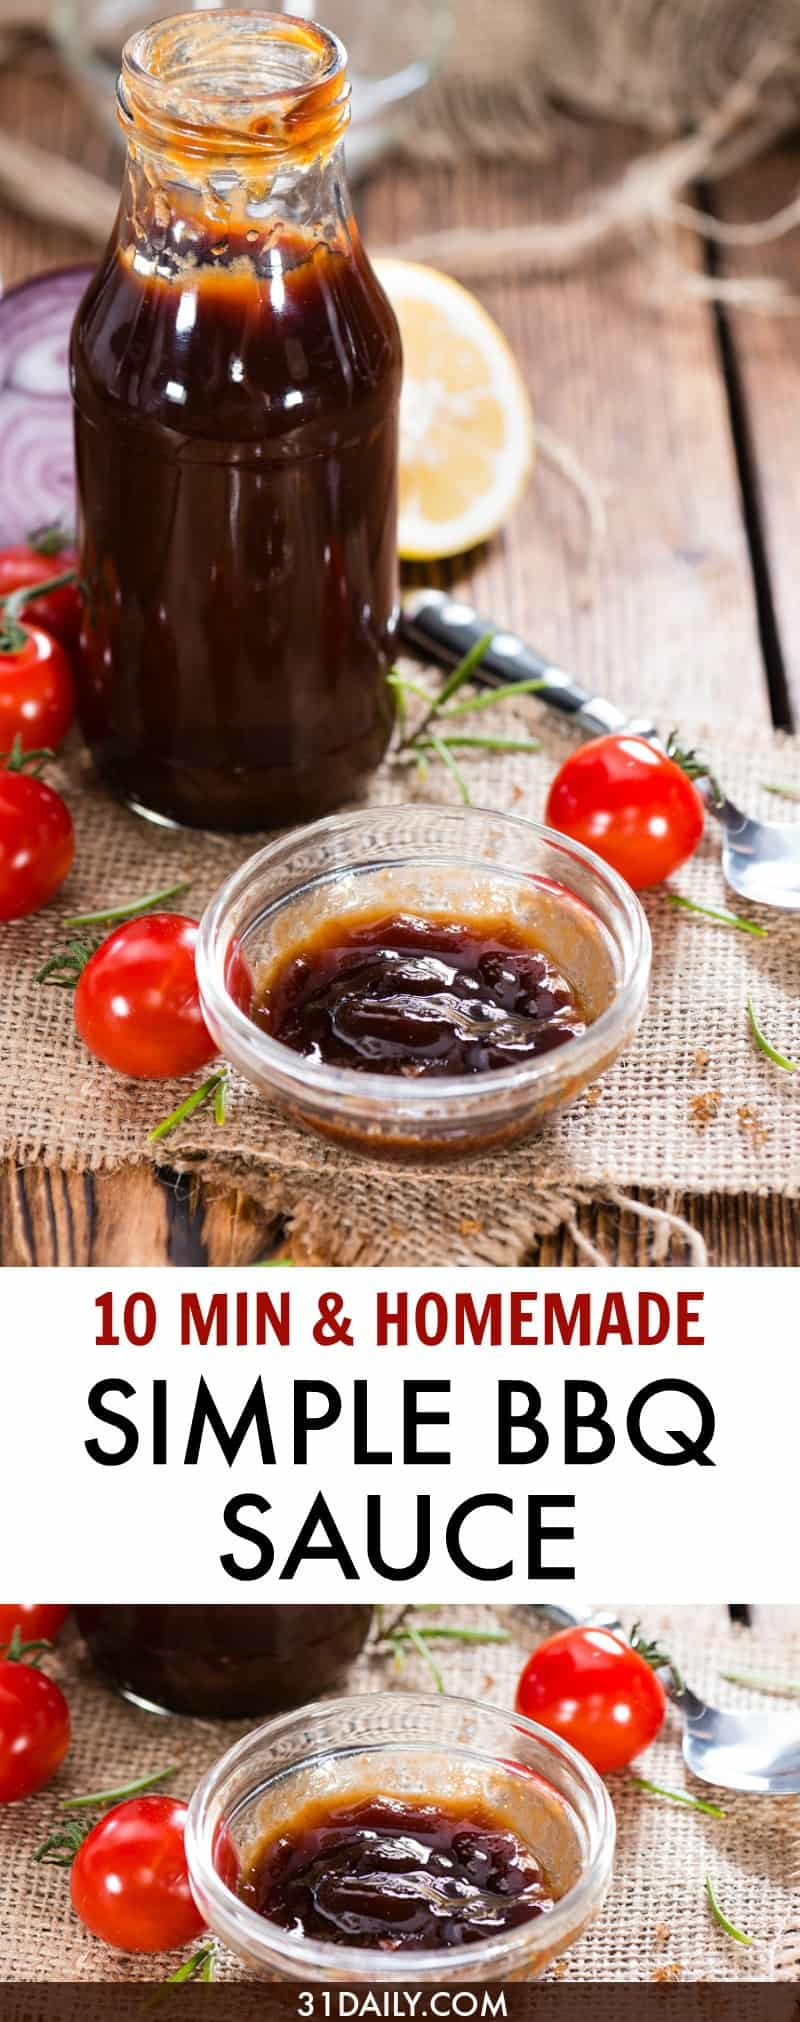 A Simple Barbecue Sauce That's Sweet and a Tad Spicy | 31Daily.com